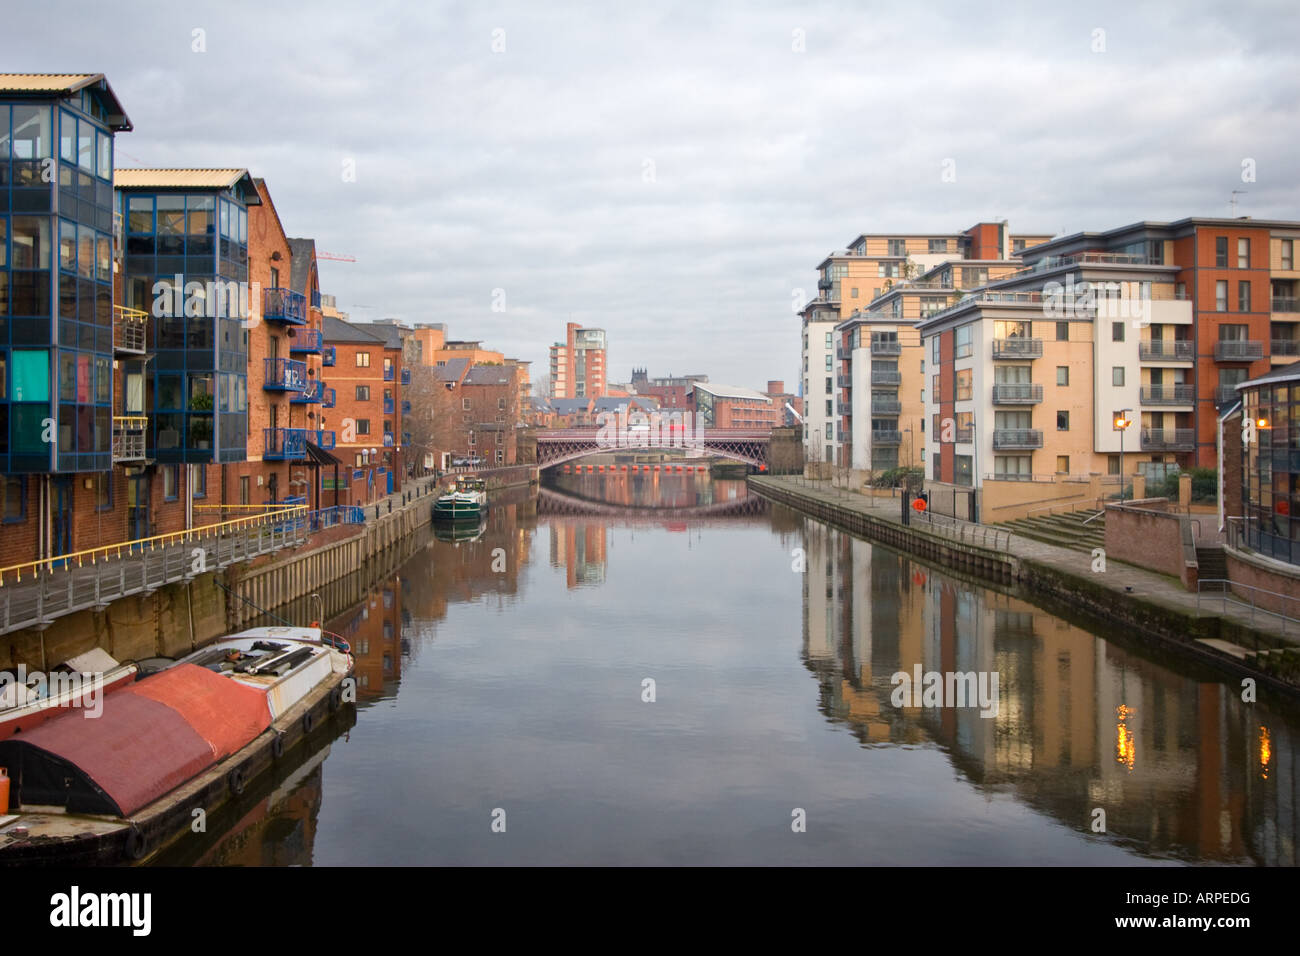 The river Aire runs beneath a bridge near the Royal Armouries in Leeds West Yorkshire England December 12 2007 - Stock Image